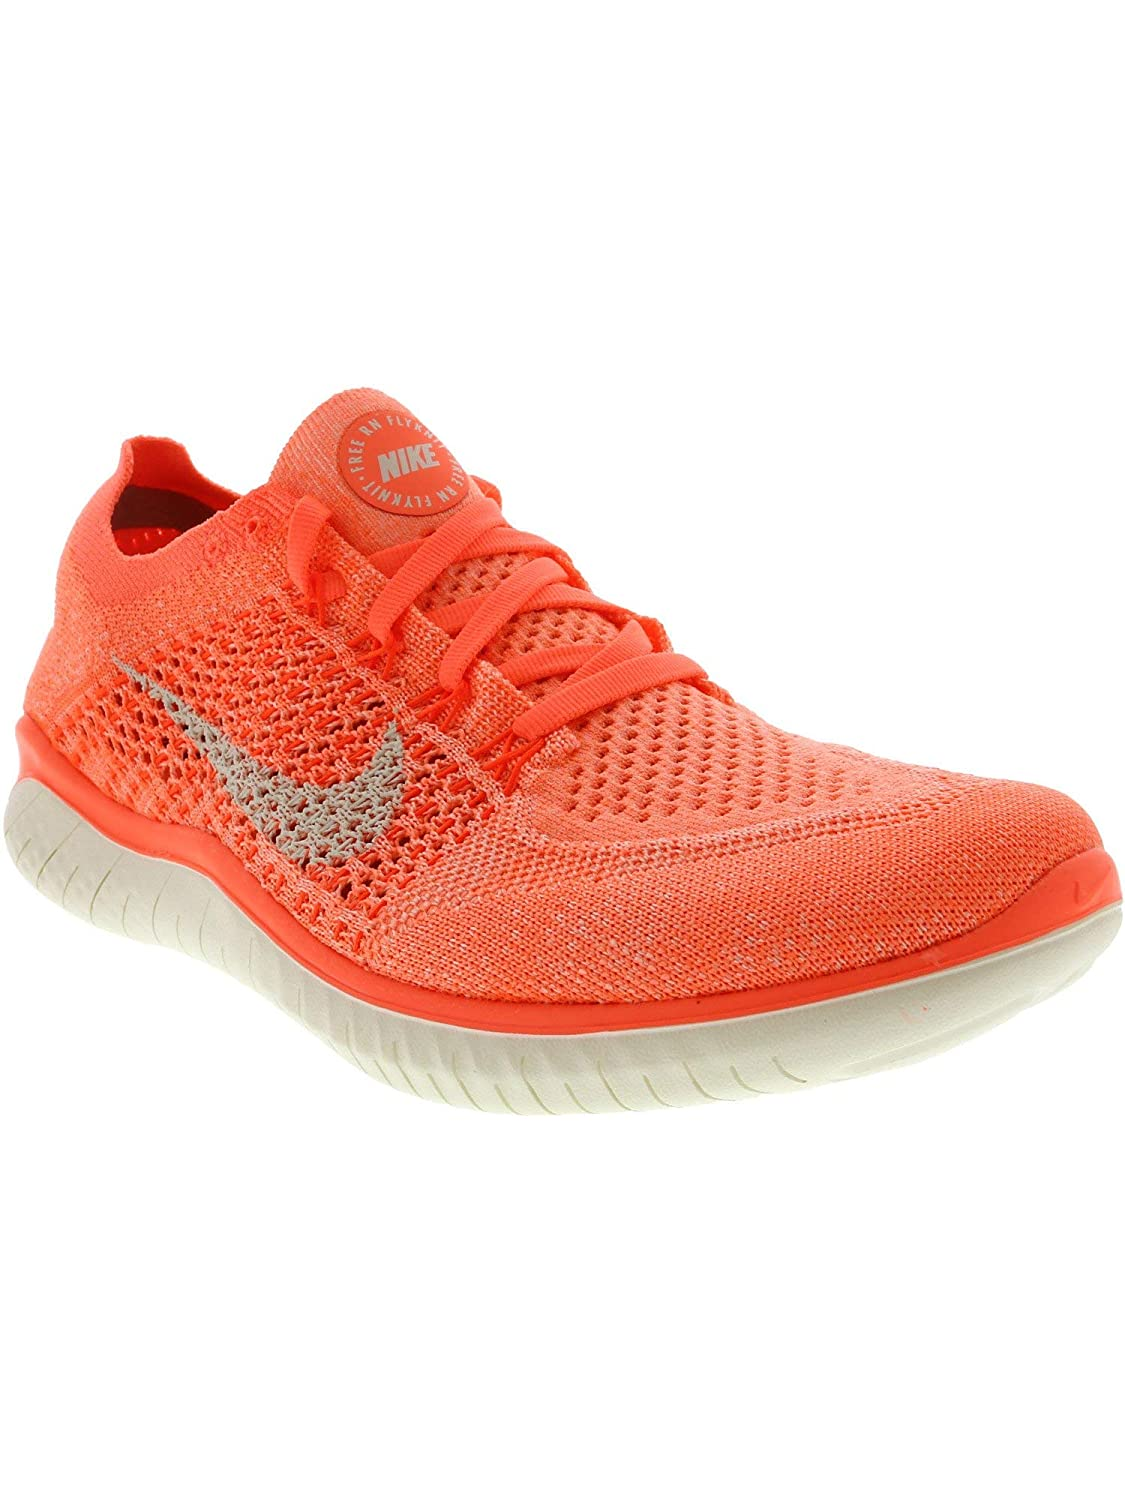 Nike Womens Free Rn Flyknit 2018 Low Top Lace Up Running, Orange, Size 7.5